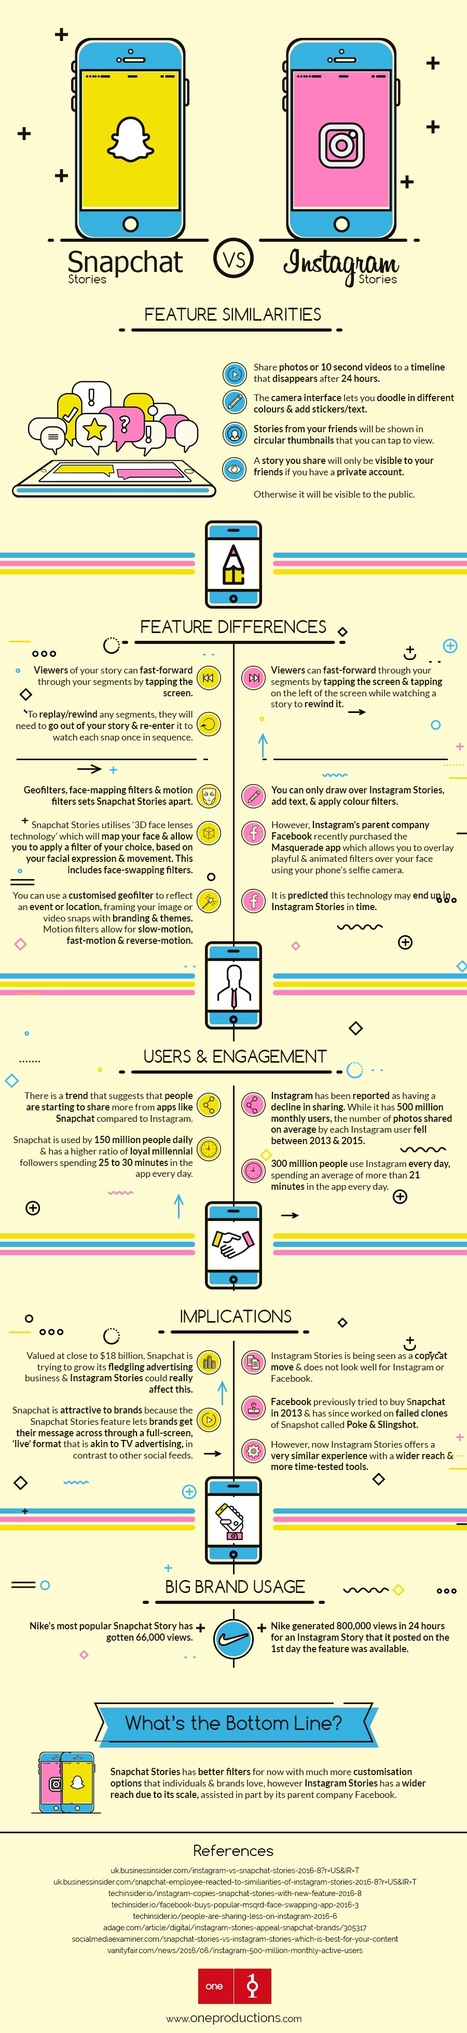 Snapchat Stories vs Instagram Stories #Infographic | MarketingHits | Scoop.it